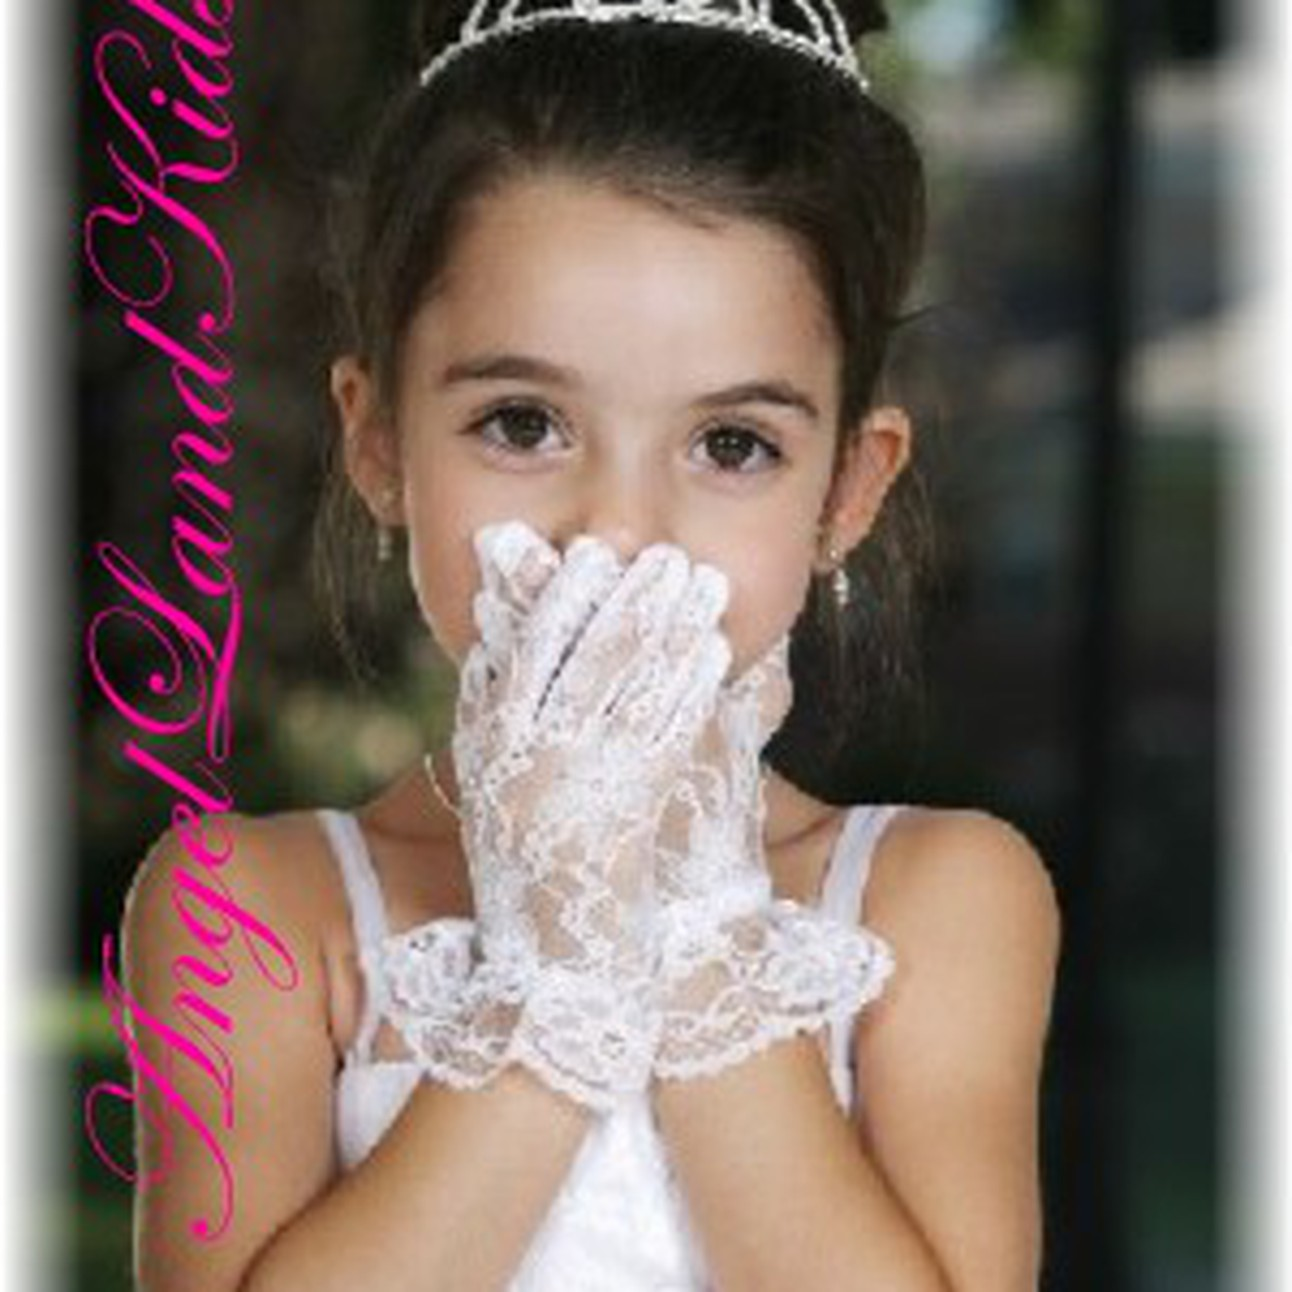 Girl in lace gloves